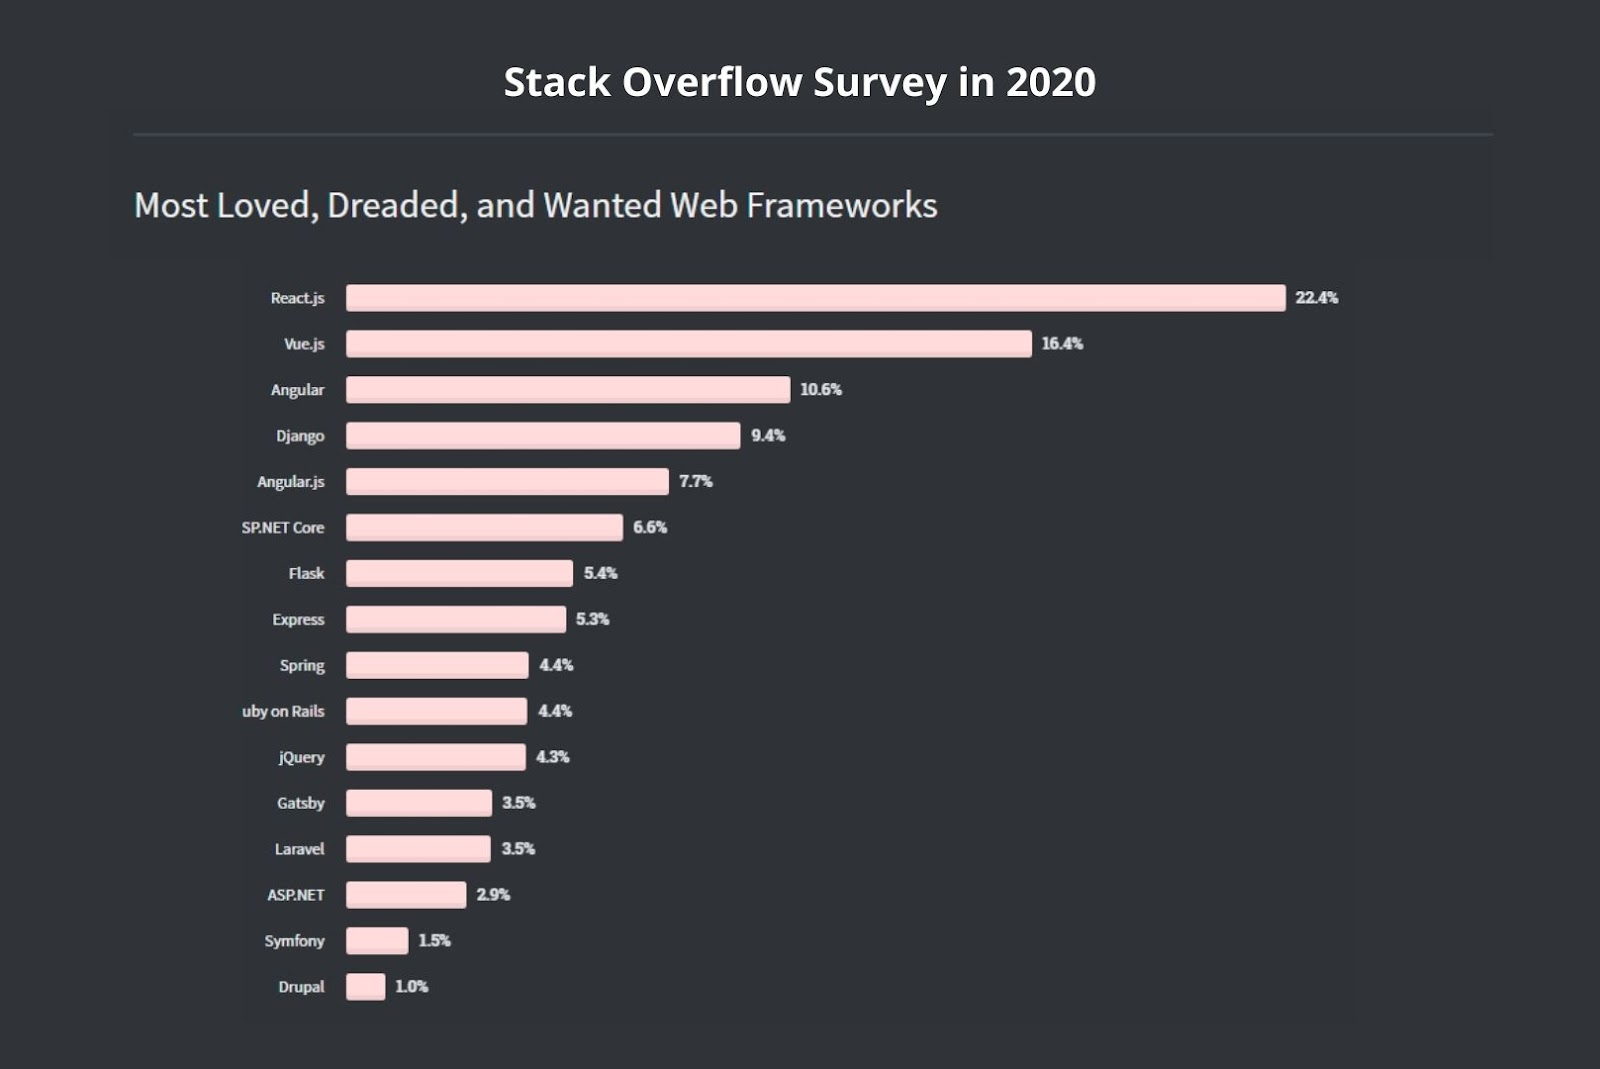 Stack Overflow survey in 2020